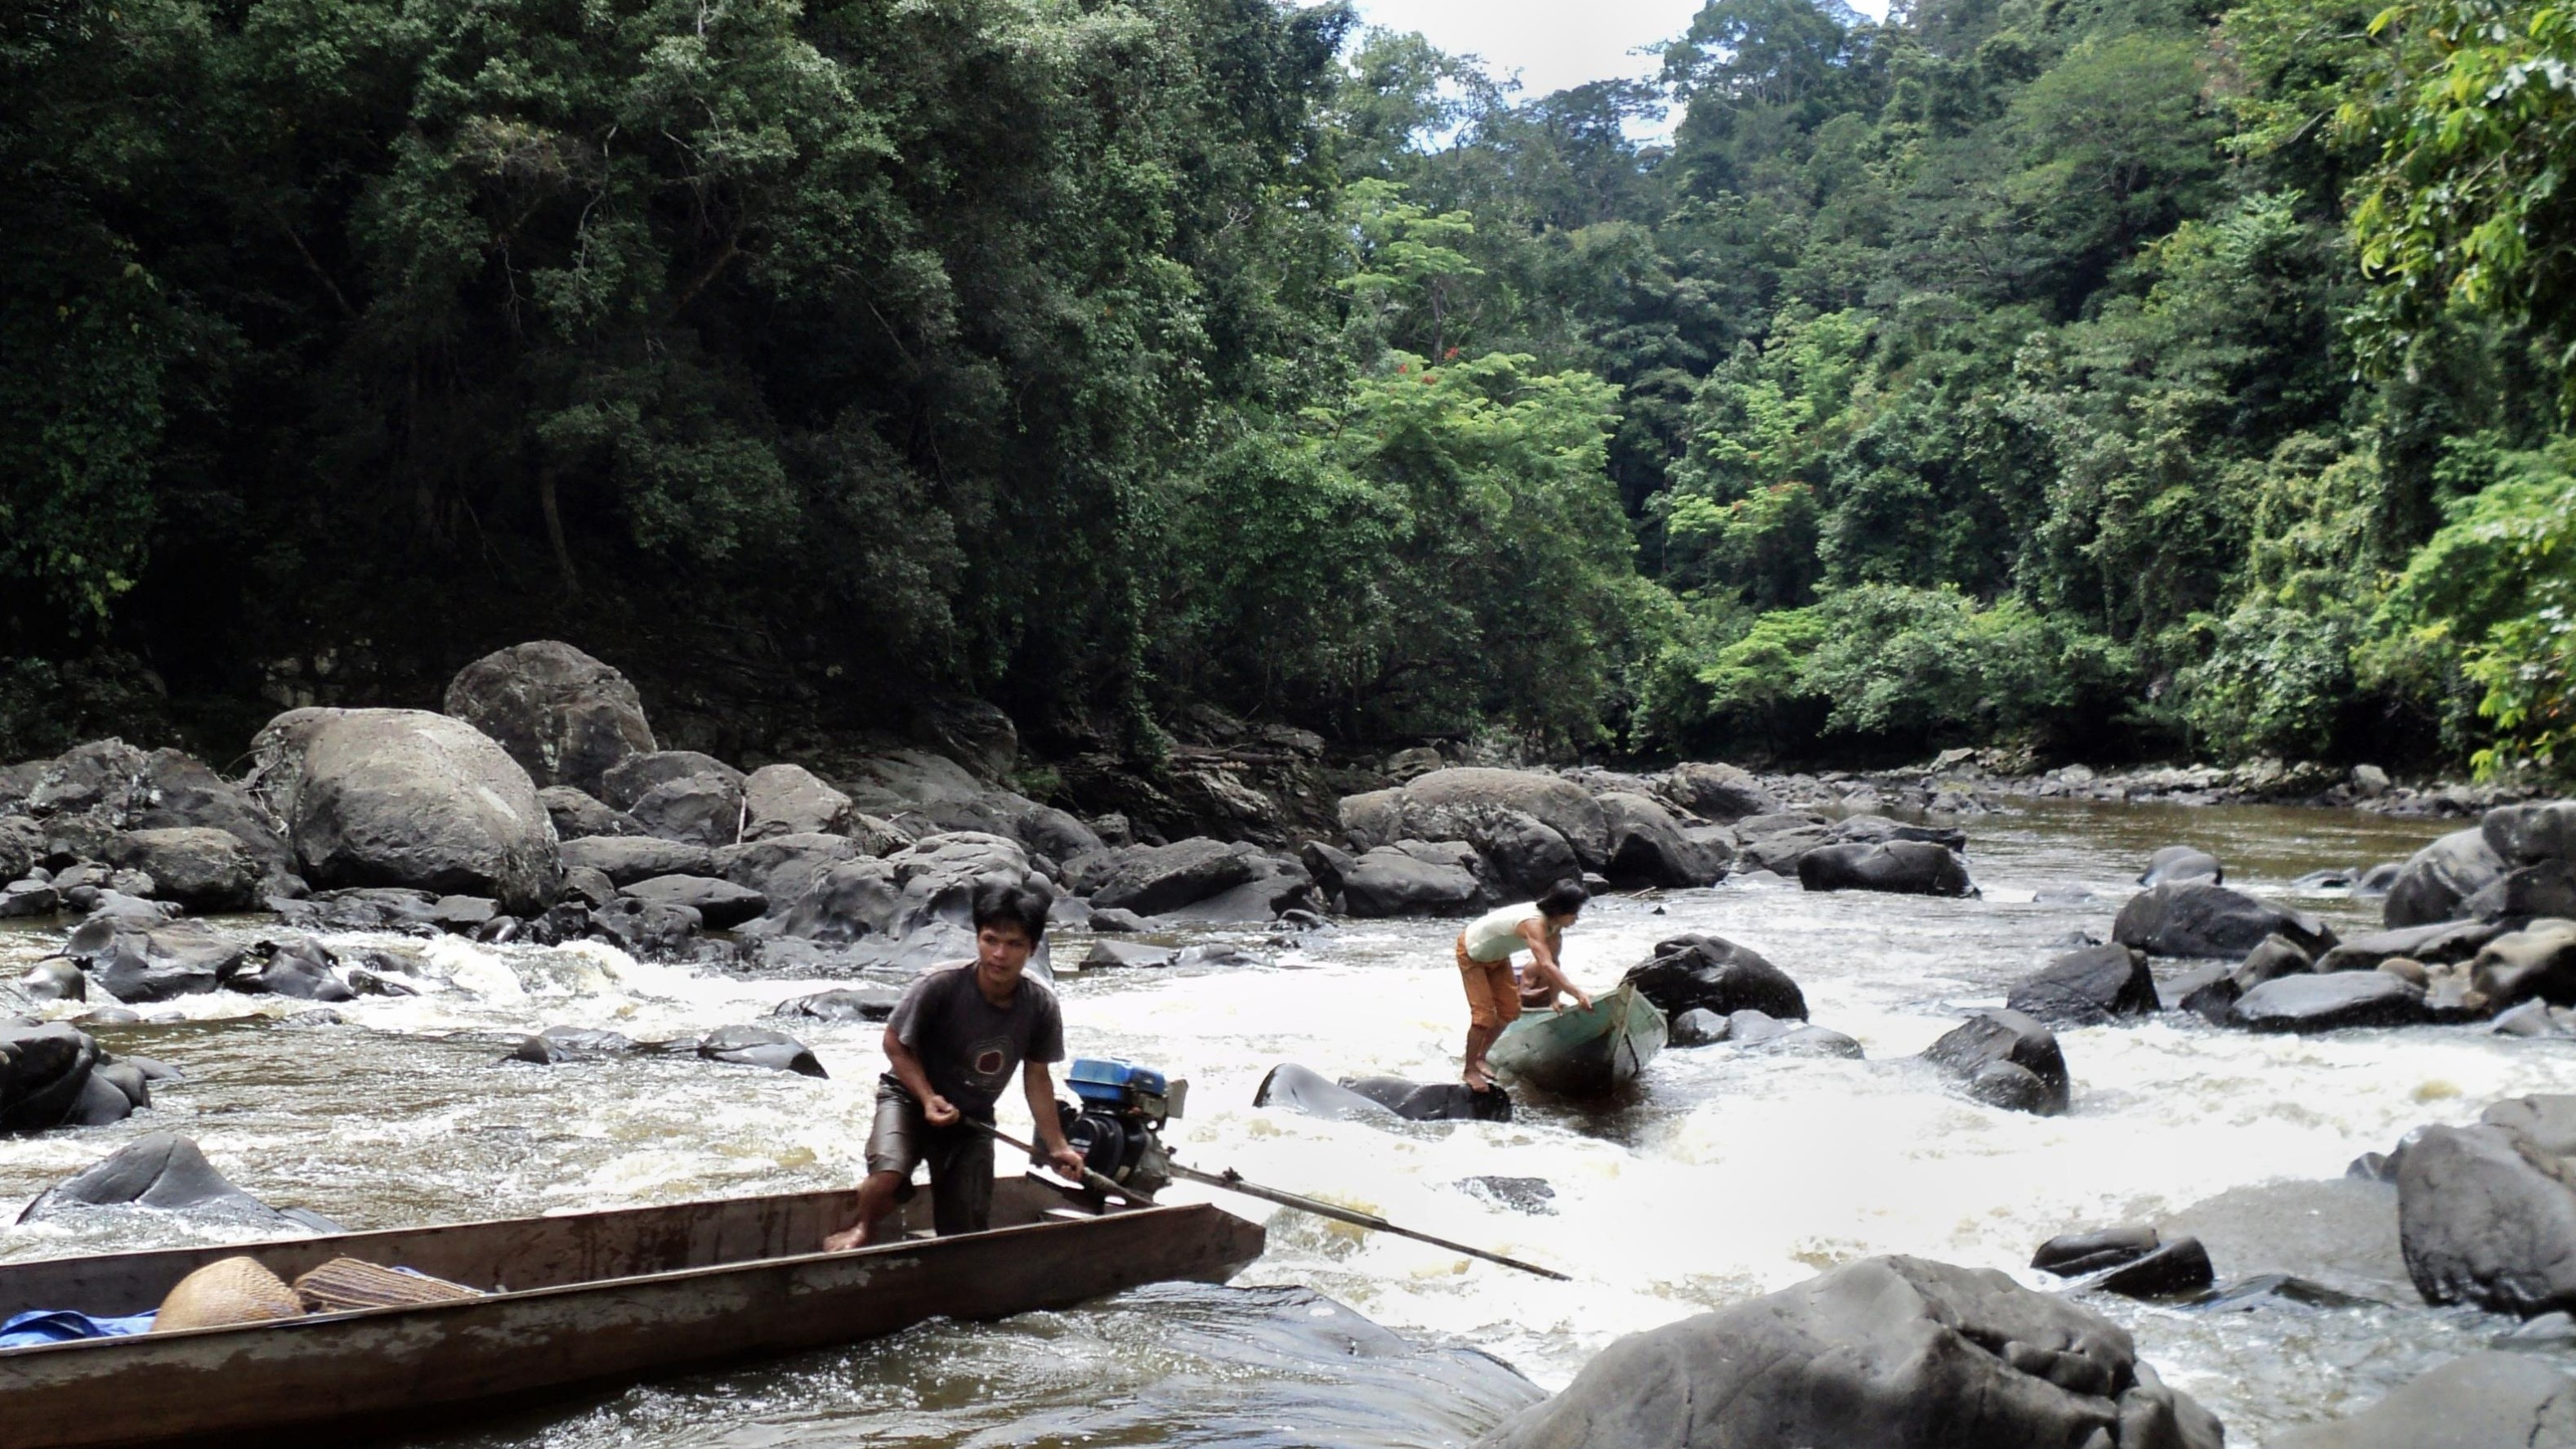 kayan river, kayan mentarang park, reserve, indonesia, borneo, kalimantan, trek, jungle, hike, trip, tour, journey, adventure, safari, forest, wildlife, rain forest, dayak, culture